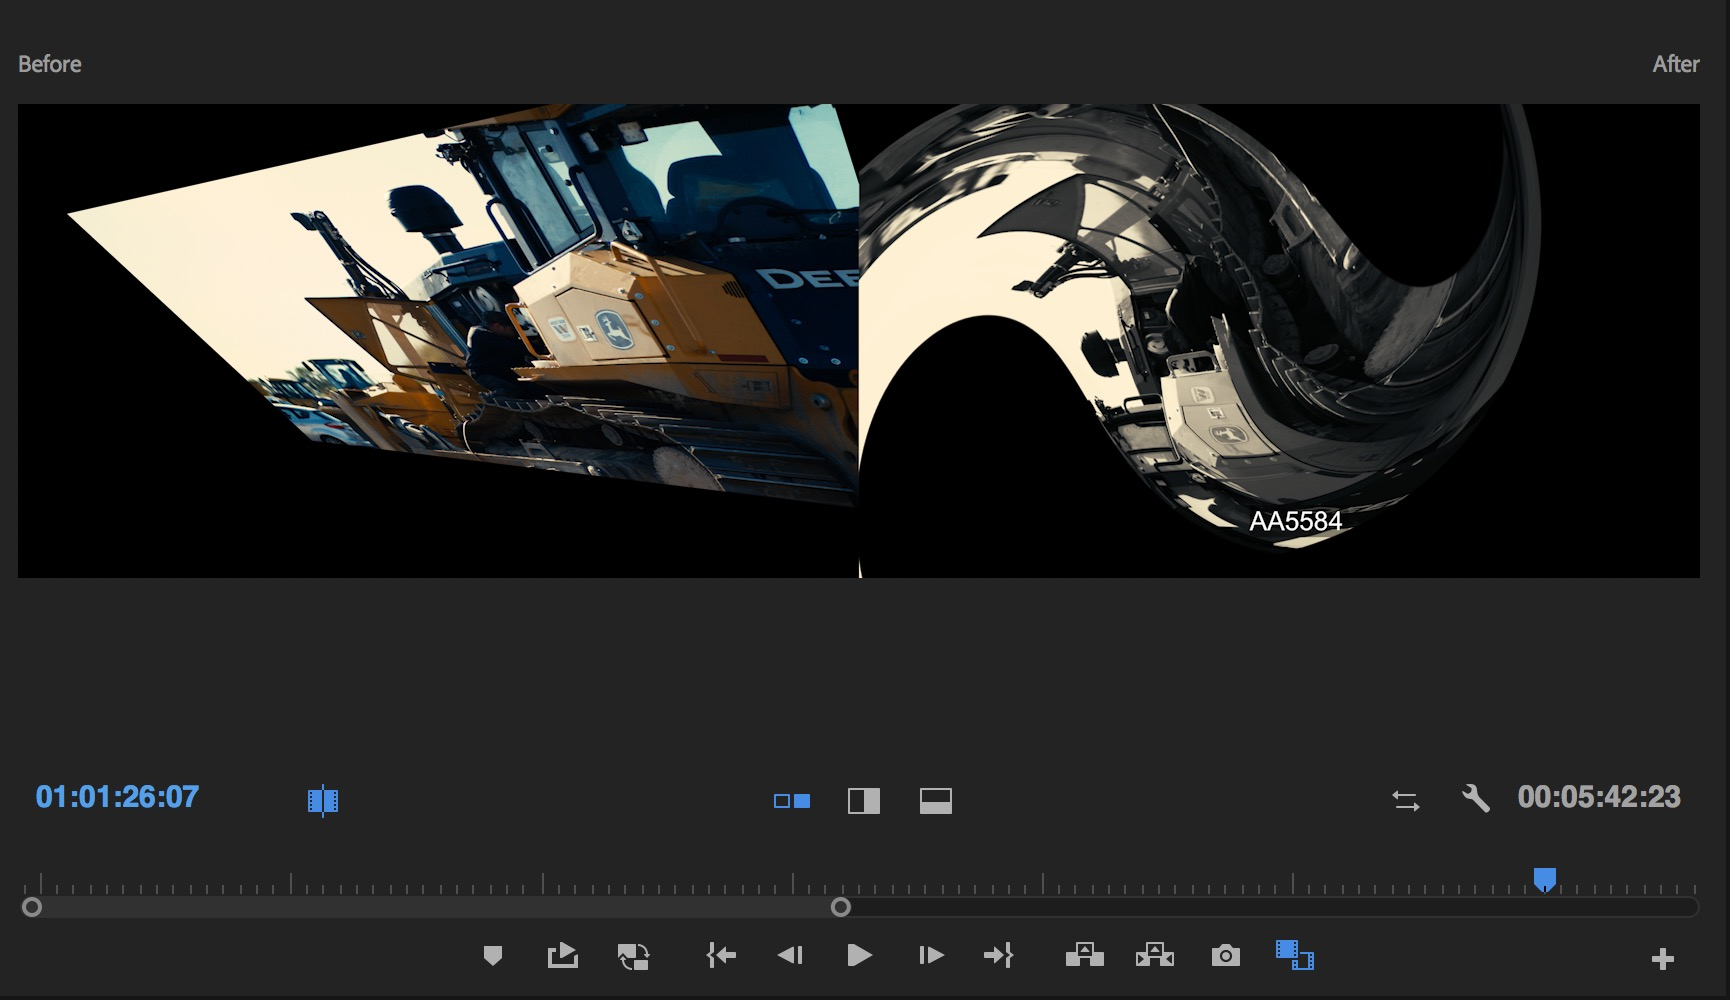 Adobe Premiere Pro 2018 NAB Update: Comparison View, Color Match and Timecode 10